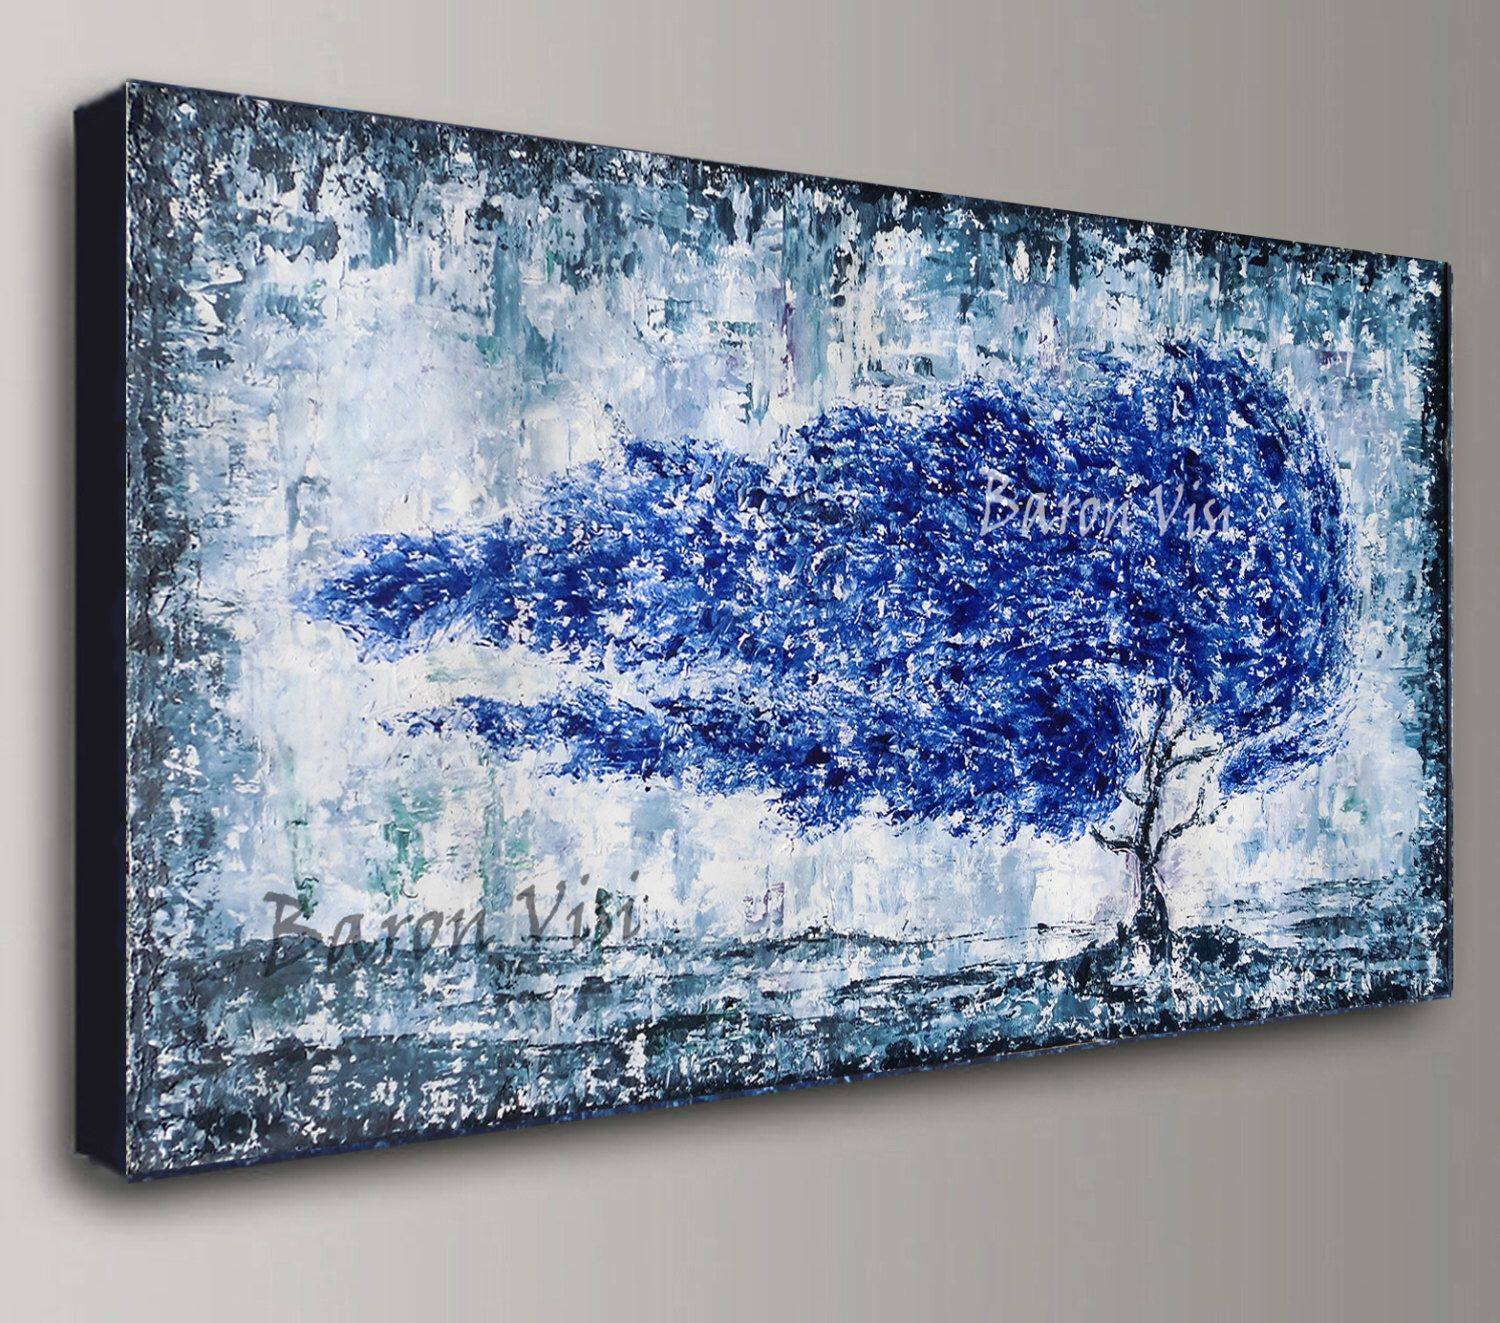 Blue Grey Abstract Painting Acrylic Painting Art Painting Blue Grey Home  Office Decor Wall Art Interior